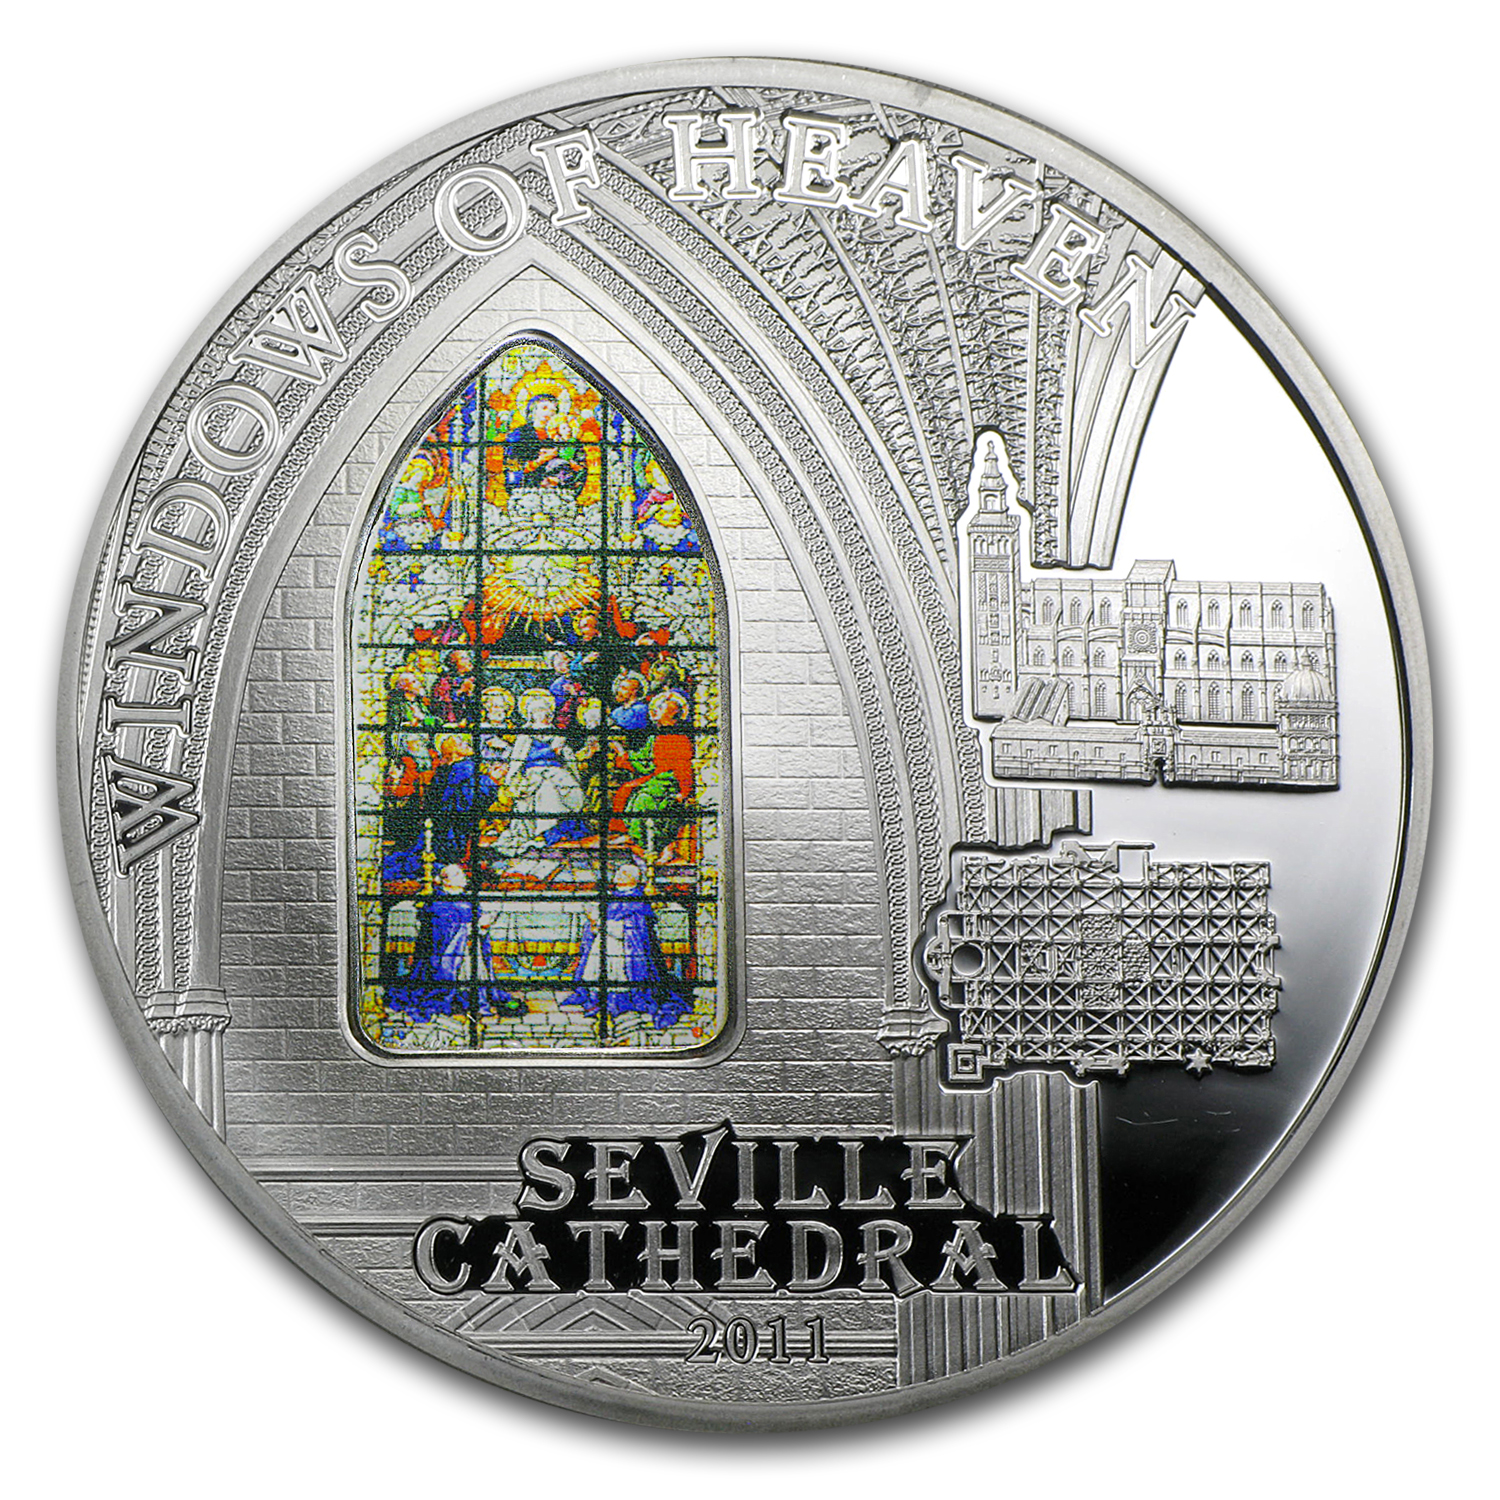 Cook Islands 2011 Silver $10 Windows of Heaven Seville Cathedral